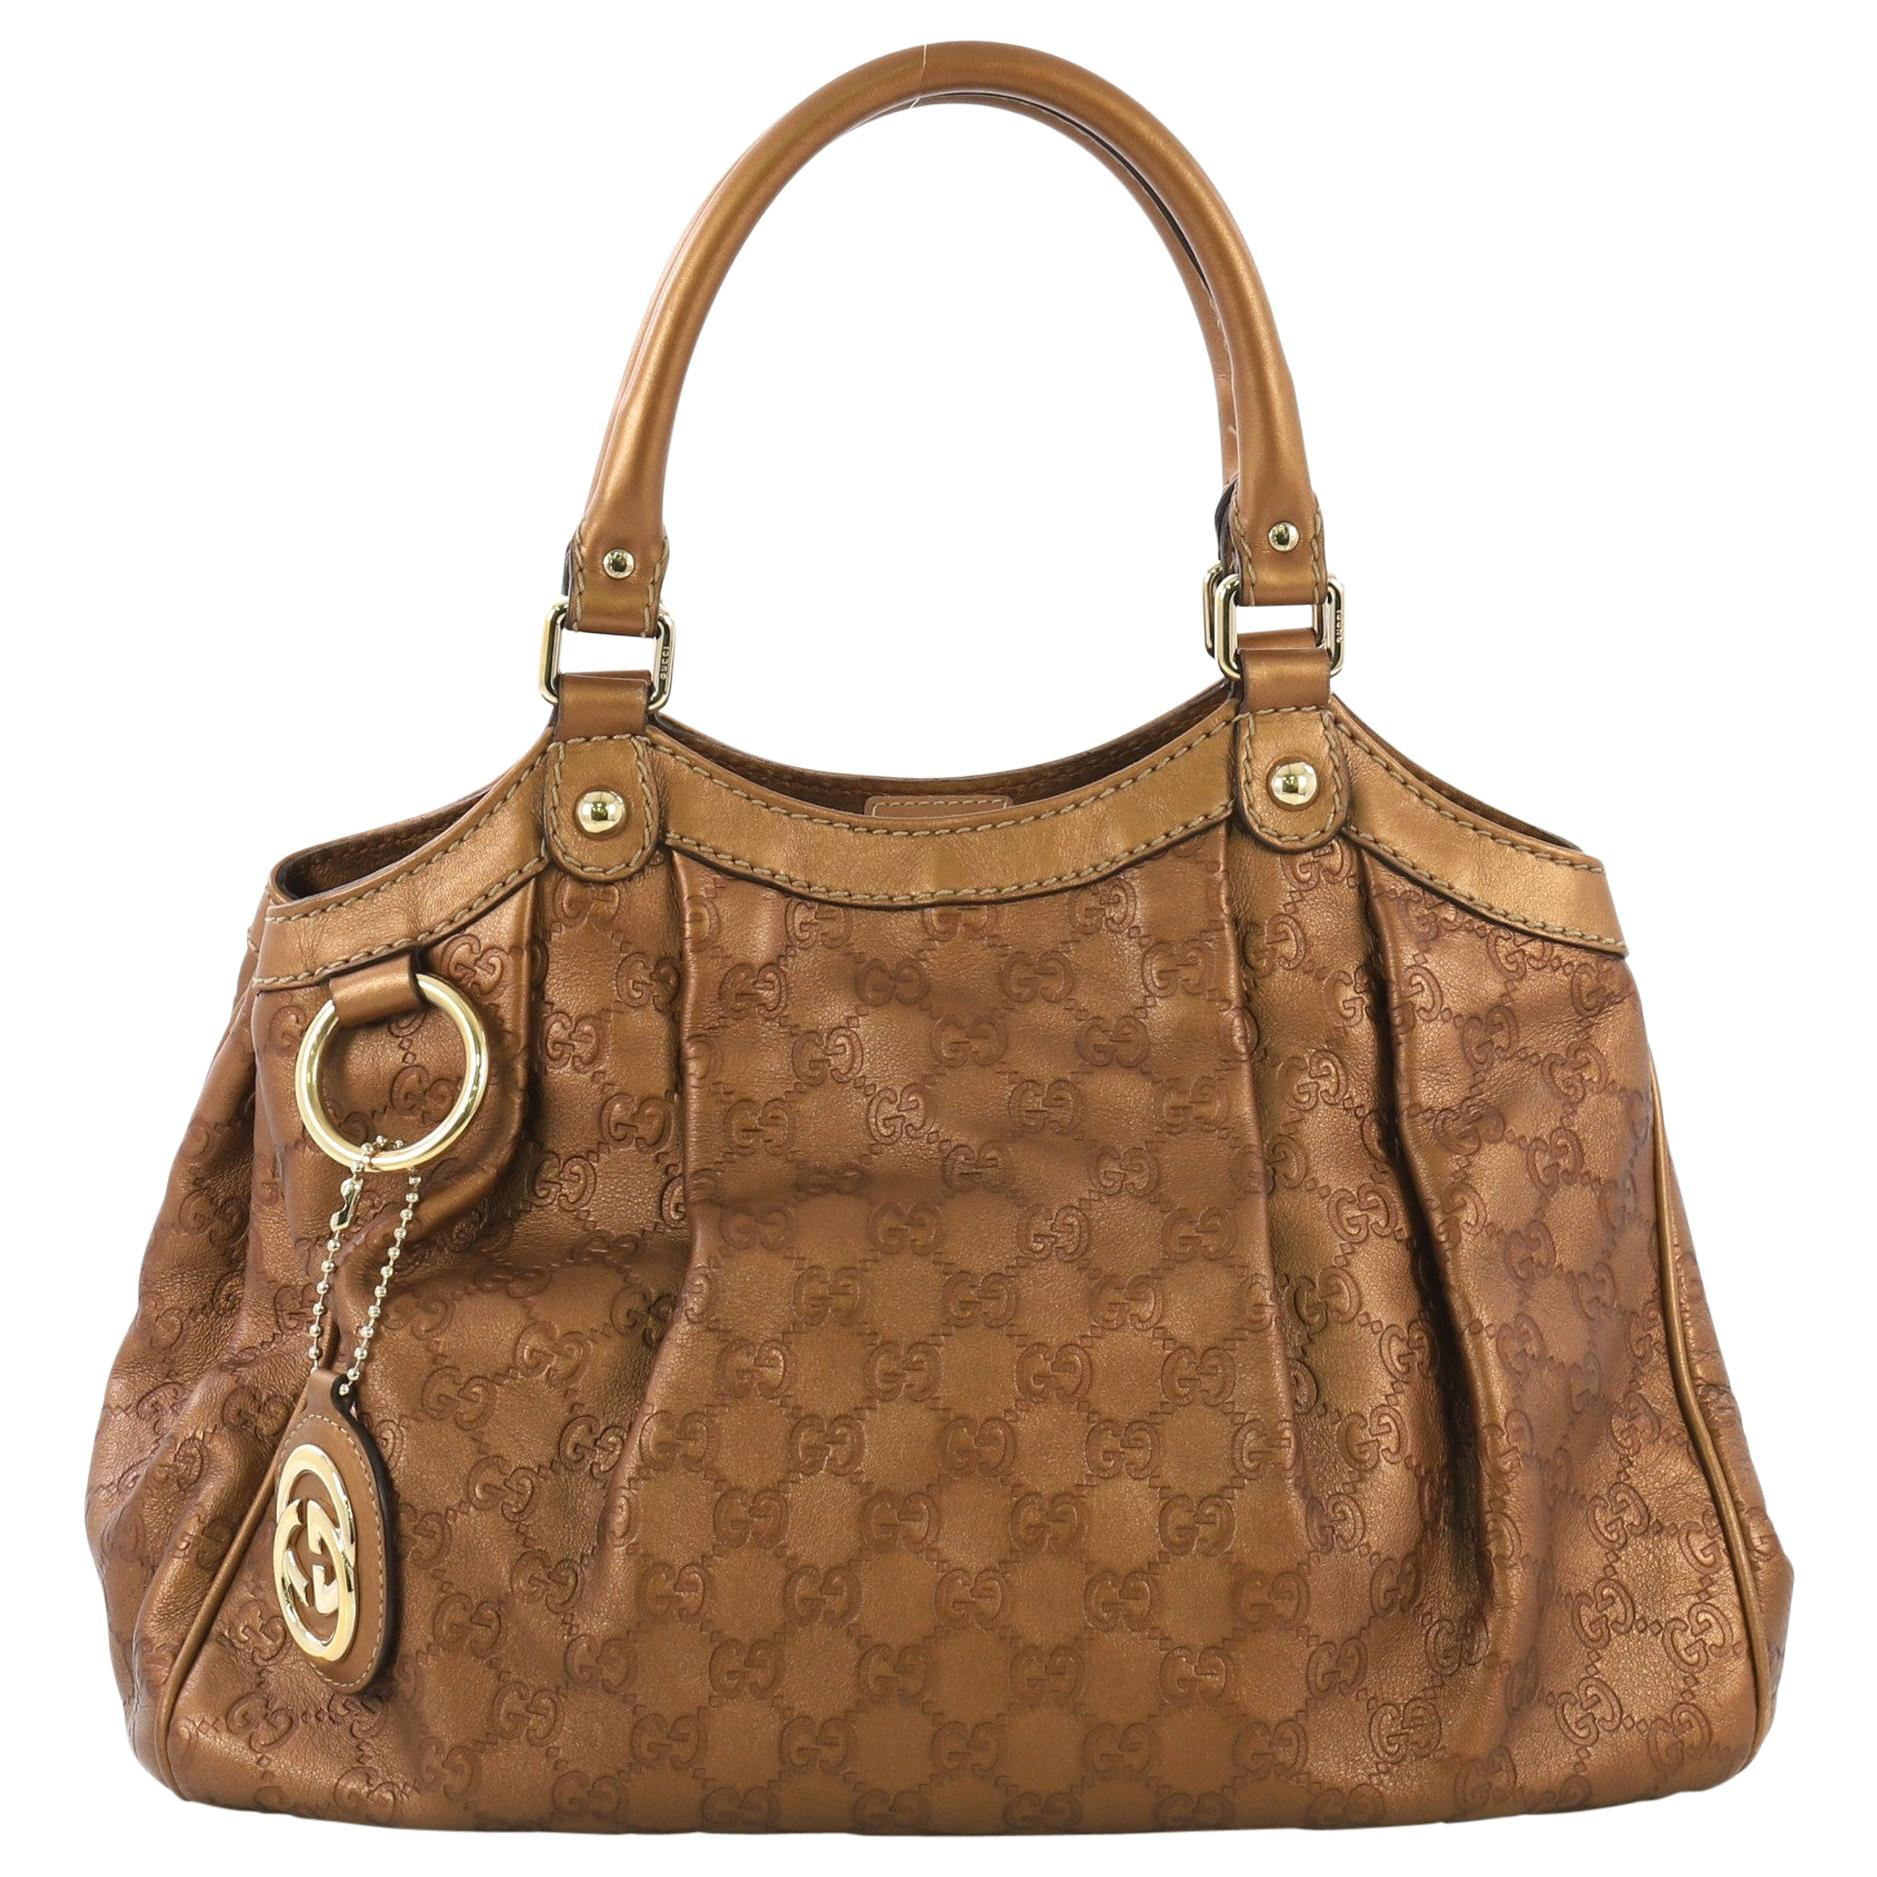 47f1a15afd2e Vintage Gucci Handbags and Purses - 2,046 For Sale at 1stdibs